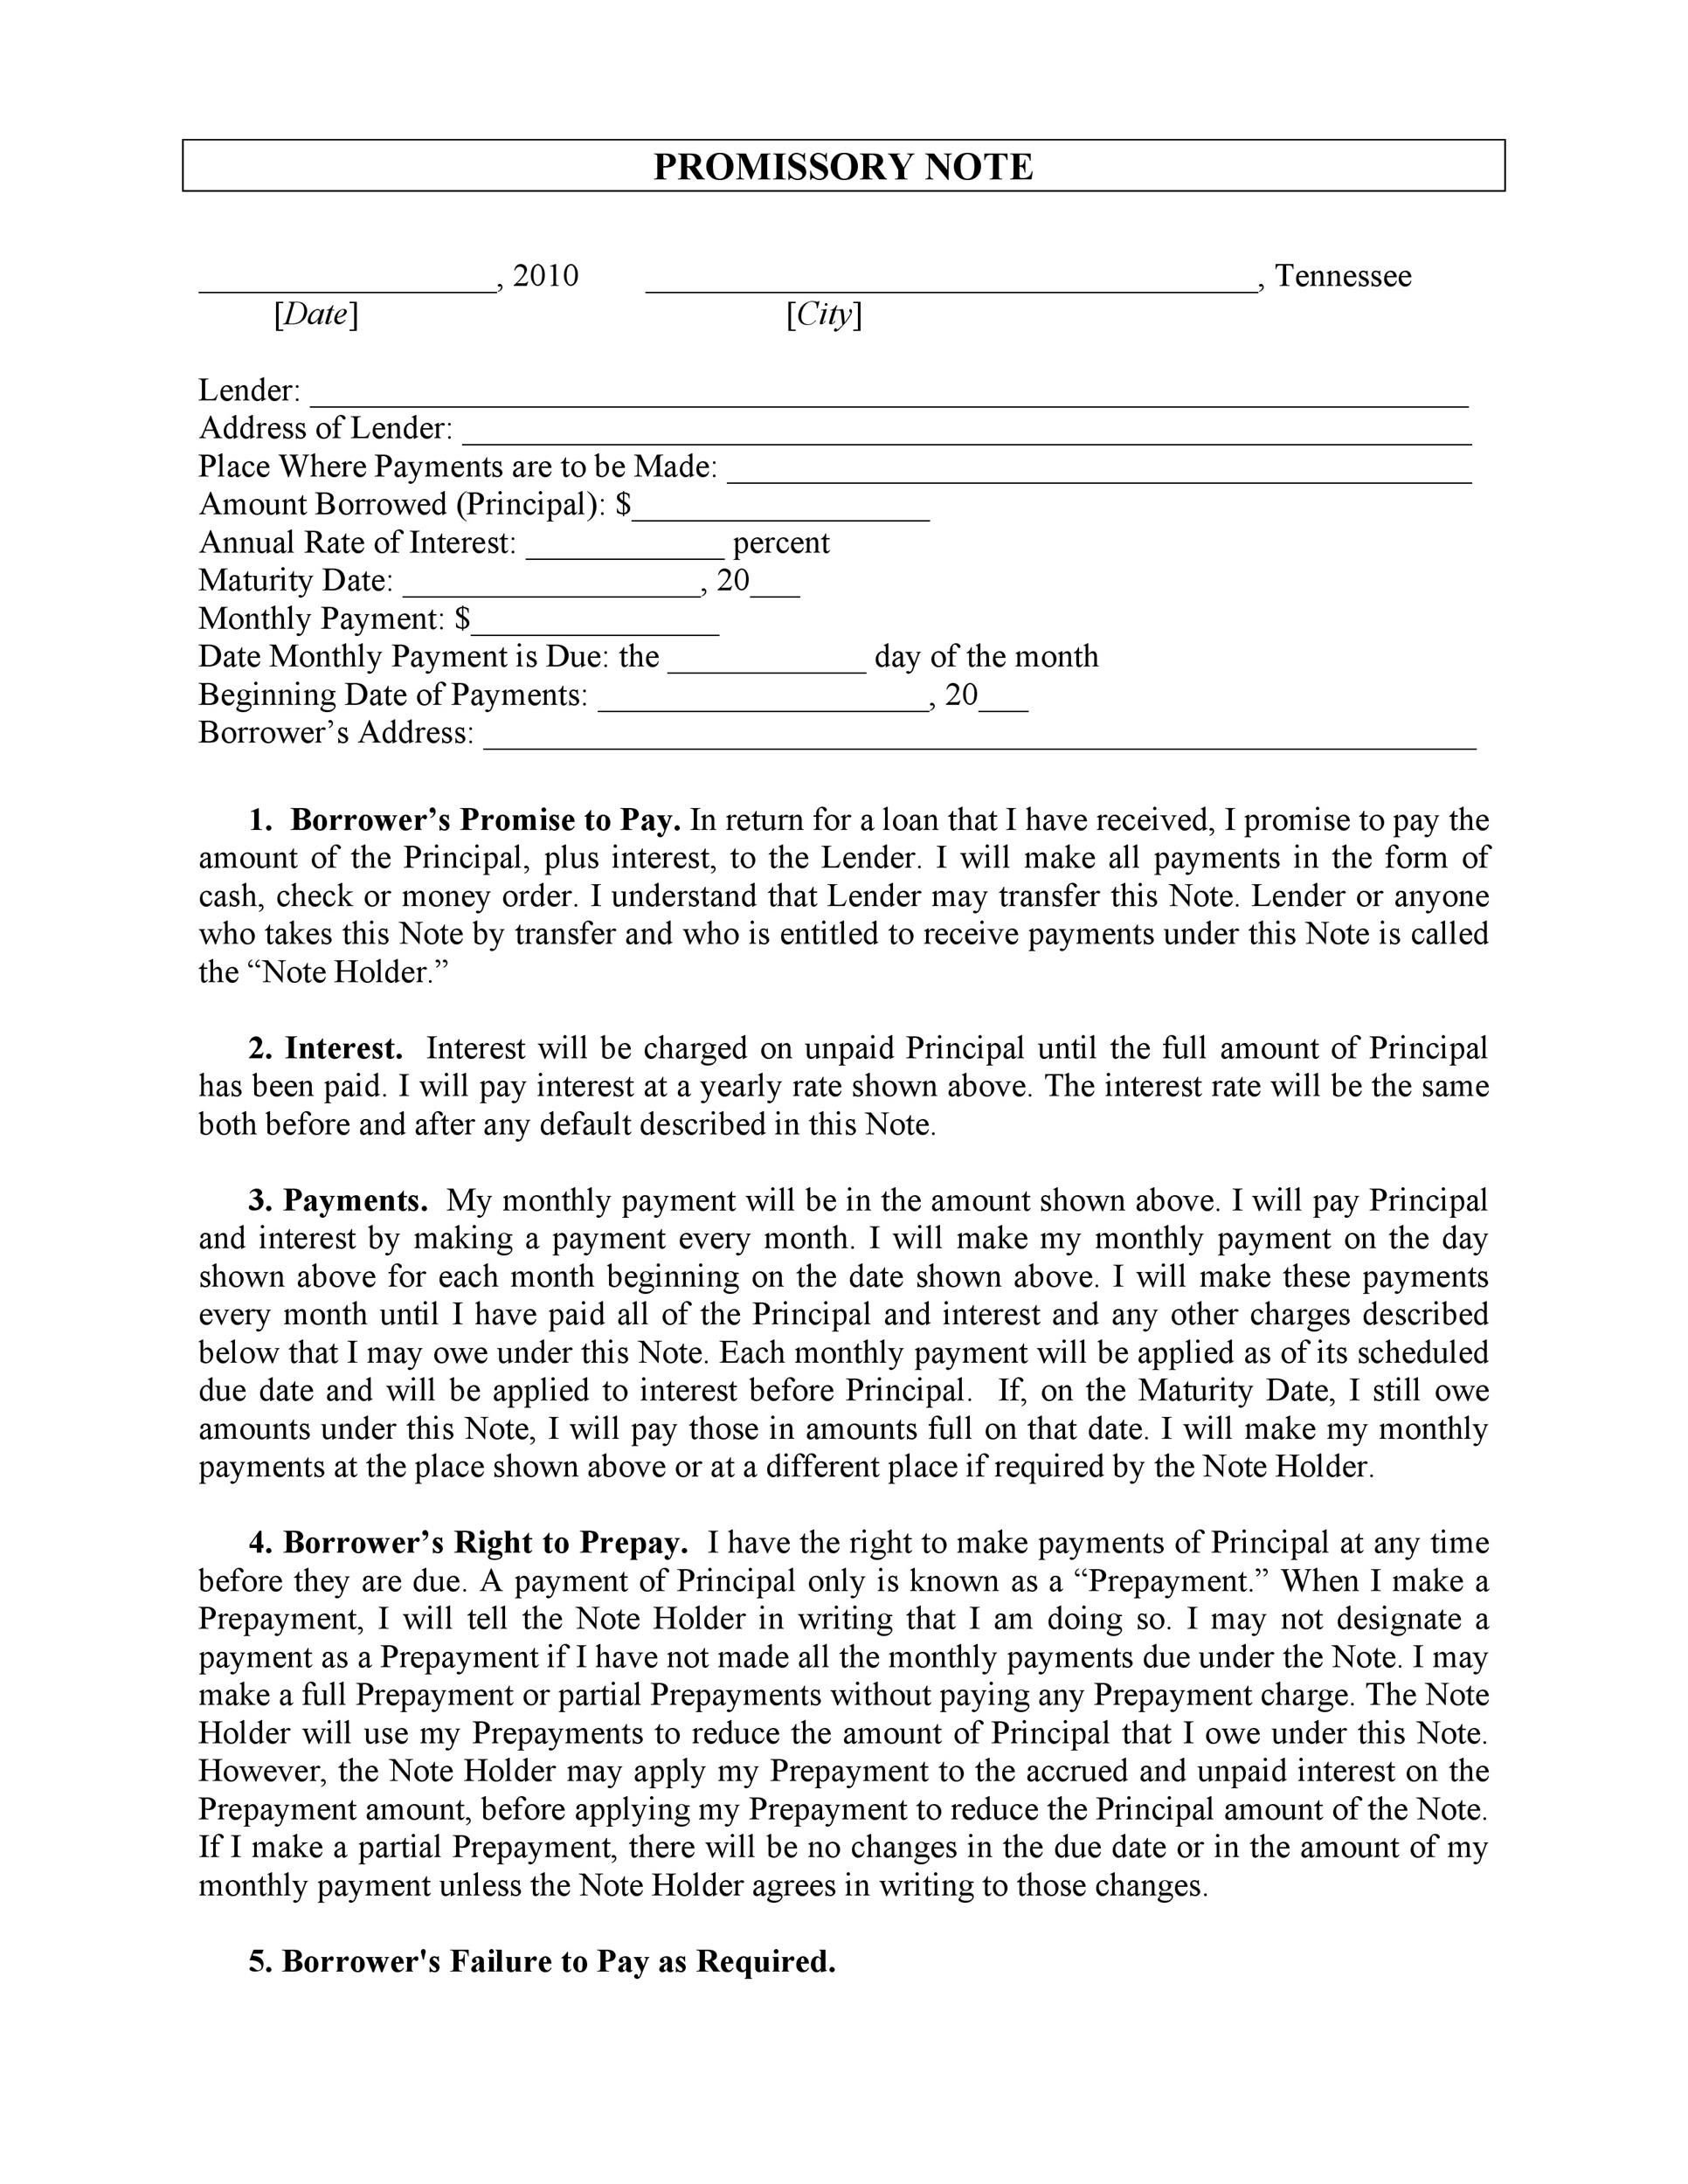 Printable Promissory Note Template 27  Promisory Note Example